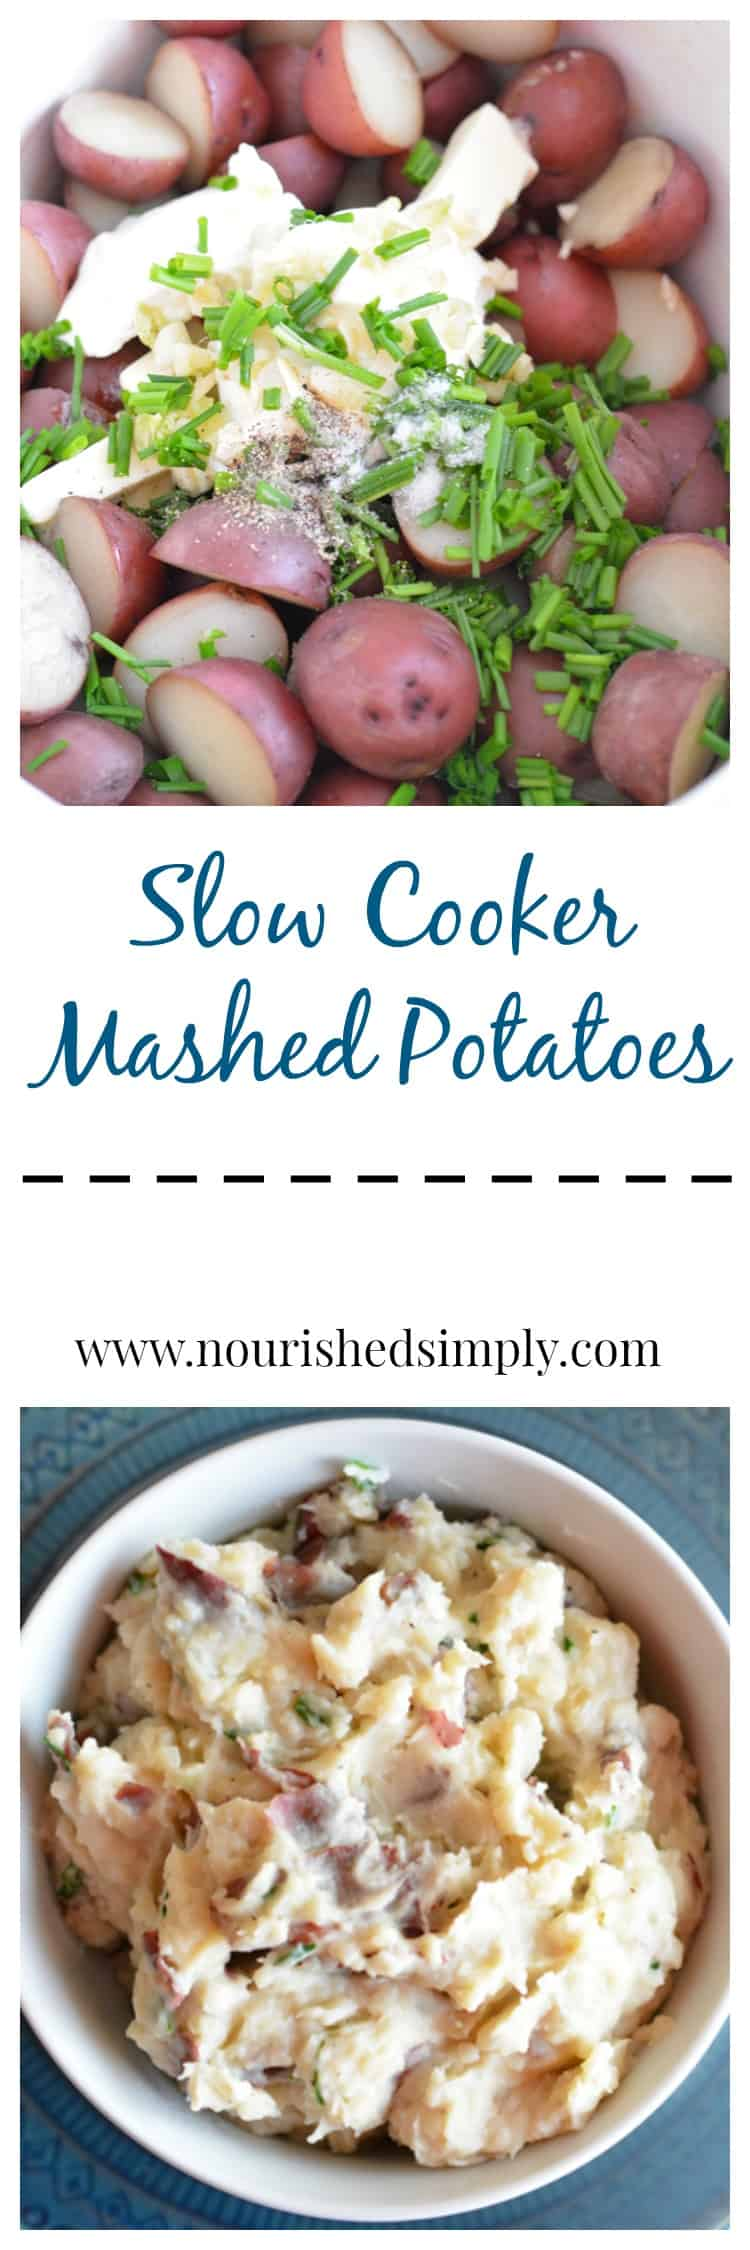 Slow cooker Mashed Potato Collage